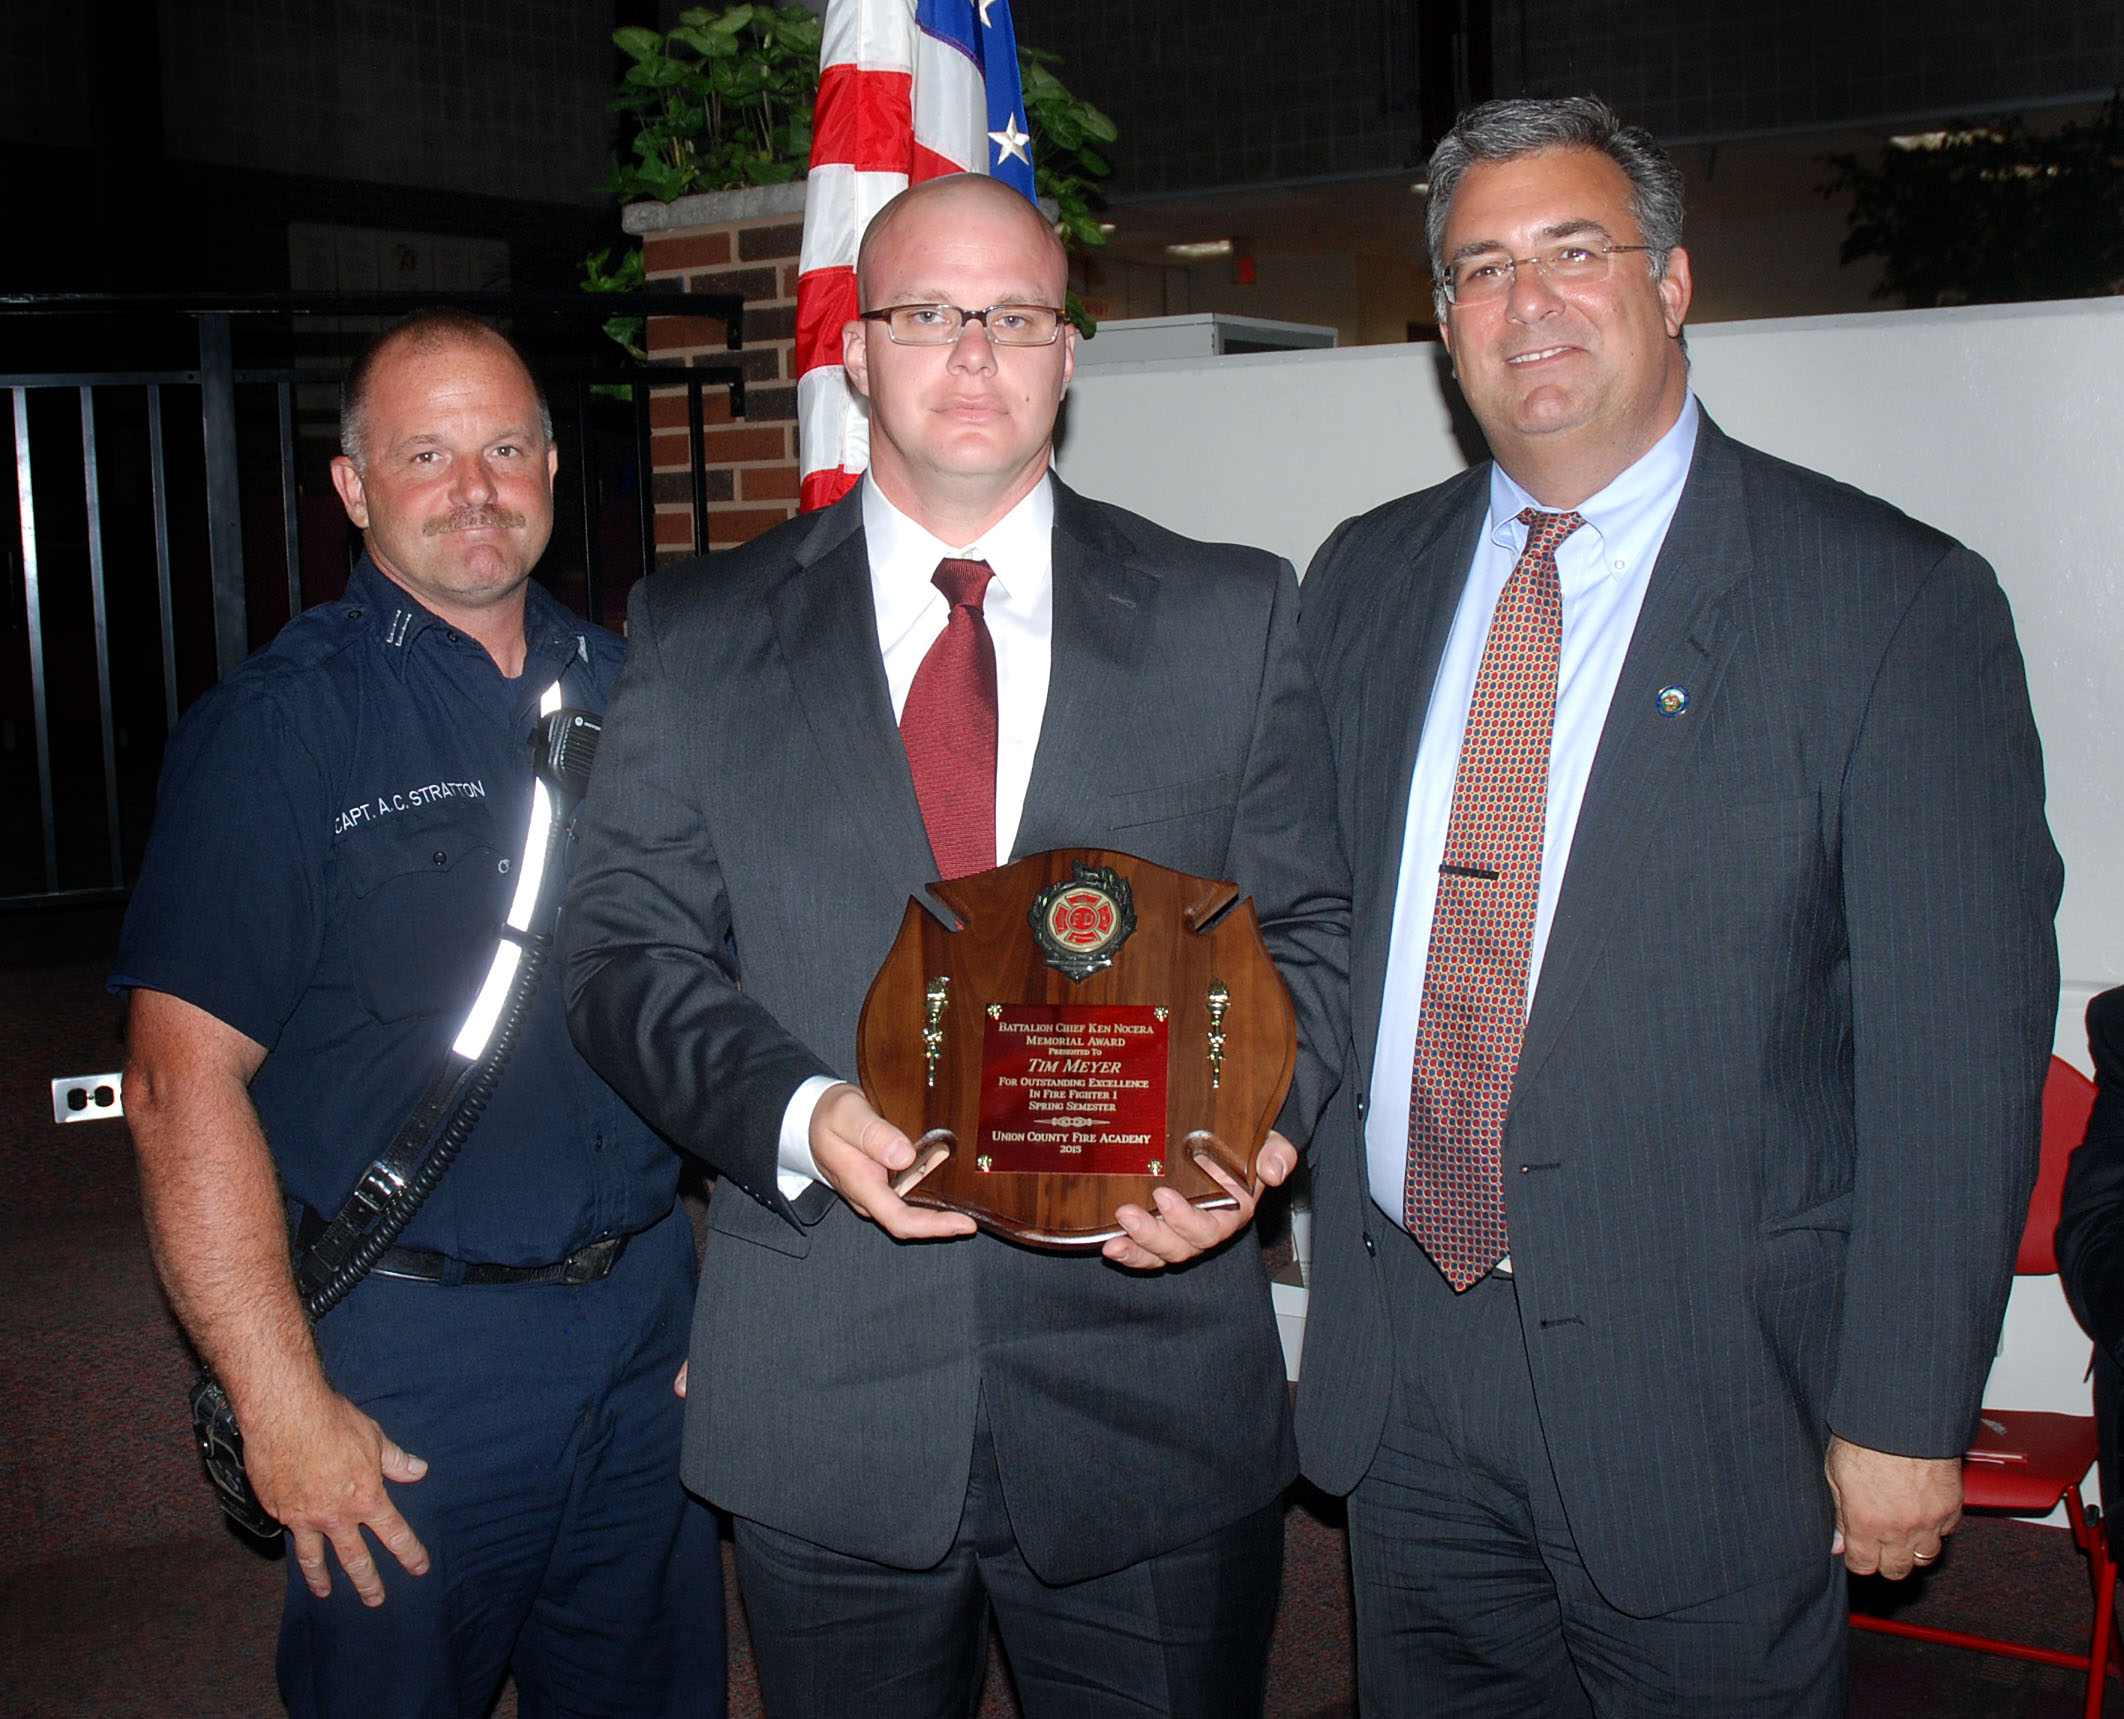 New jersey union county cranford - Tim Meyer Of The Cranford Fire Department